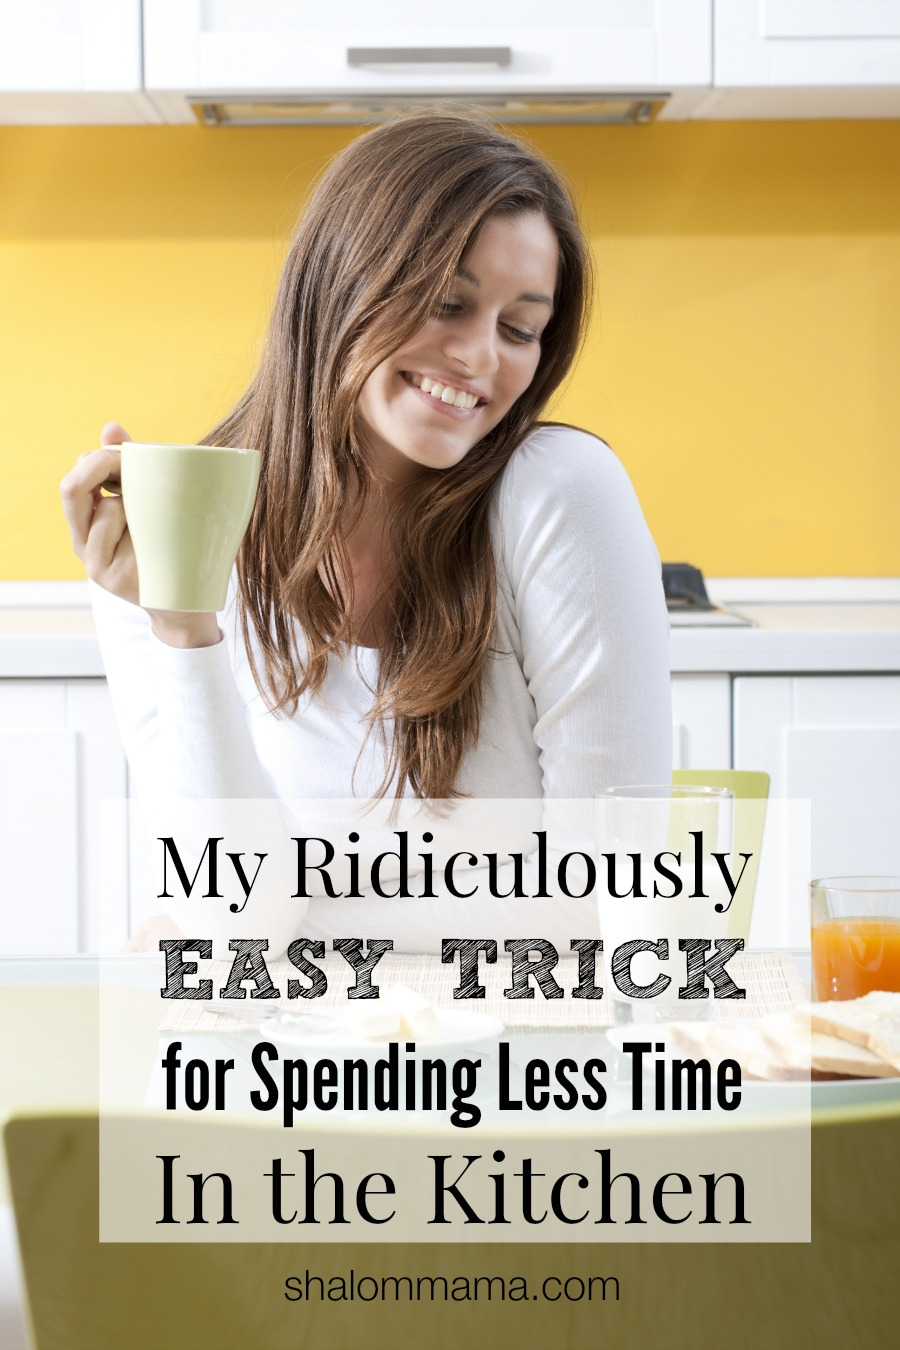 My Ridiculously Easy Trick for Spending Less Time in the Kitchen